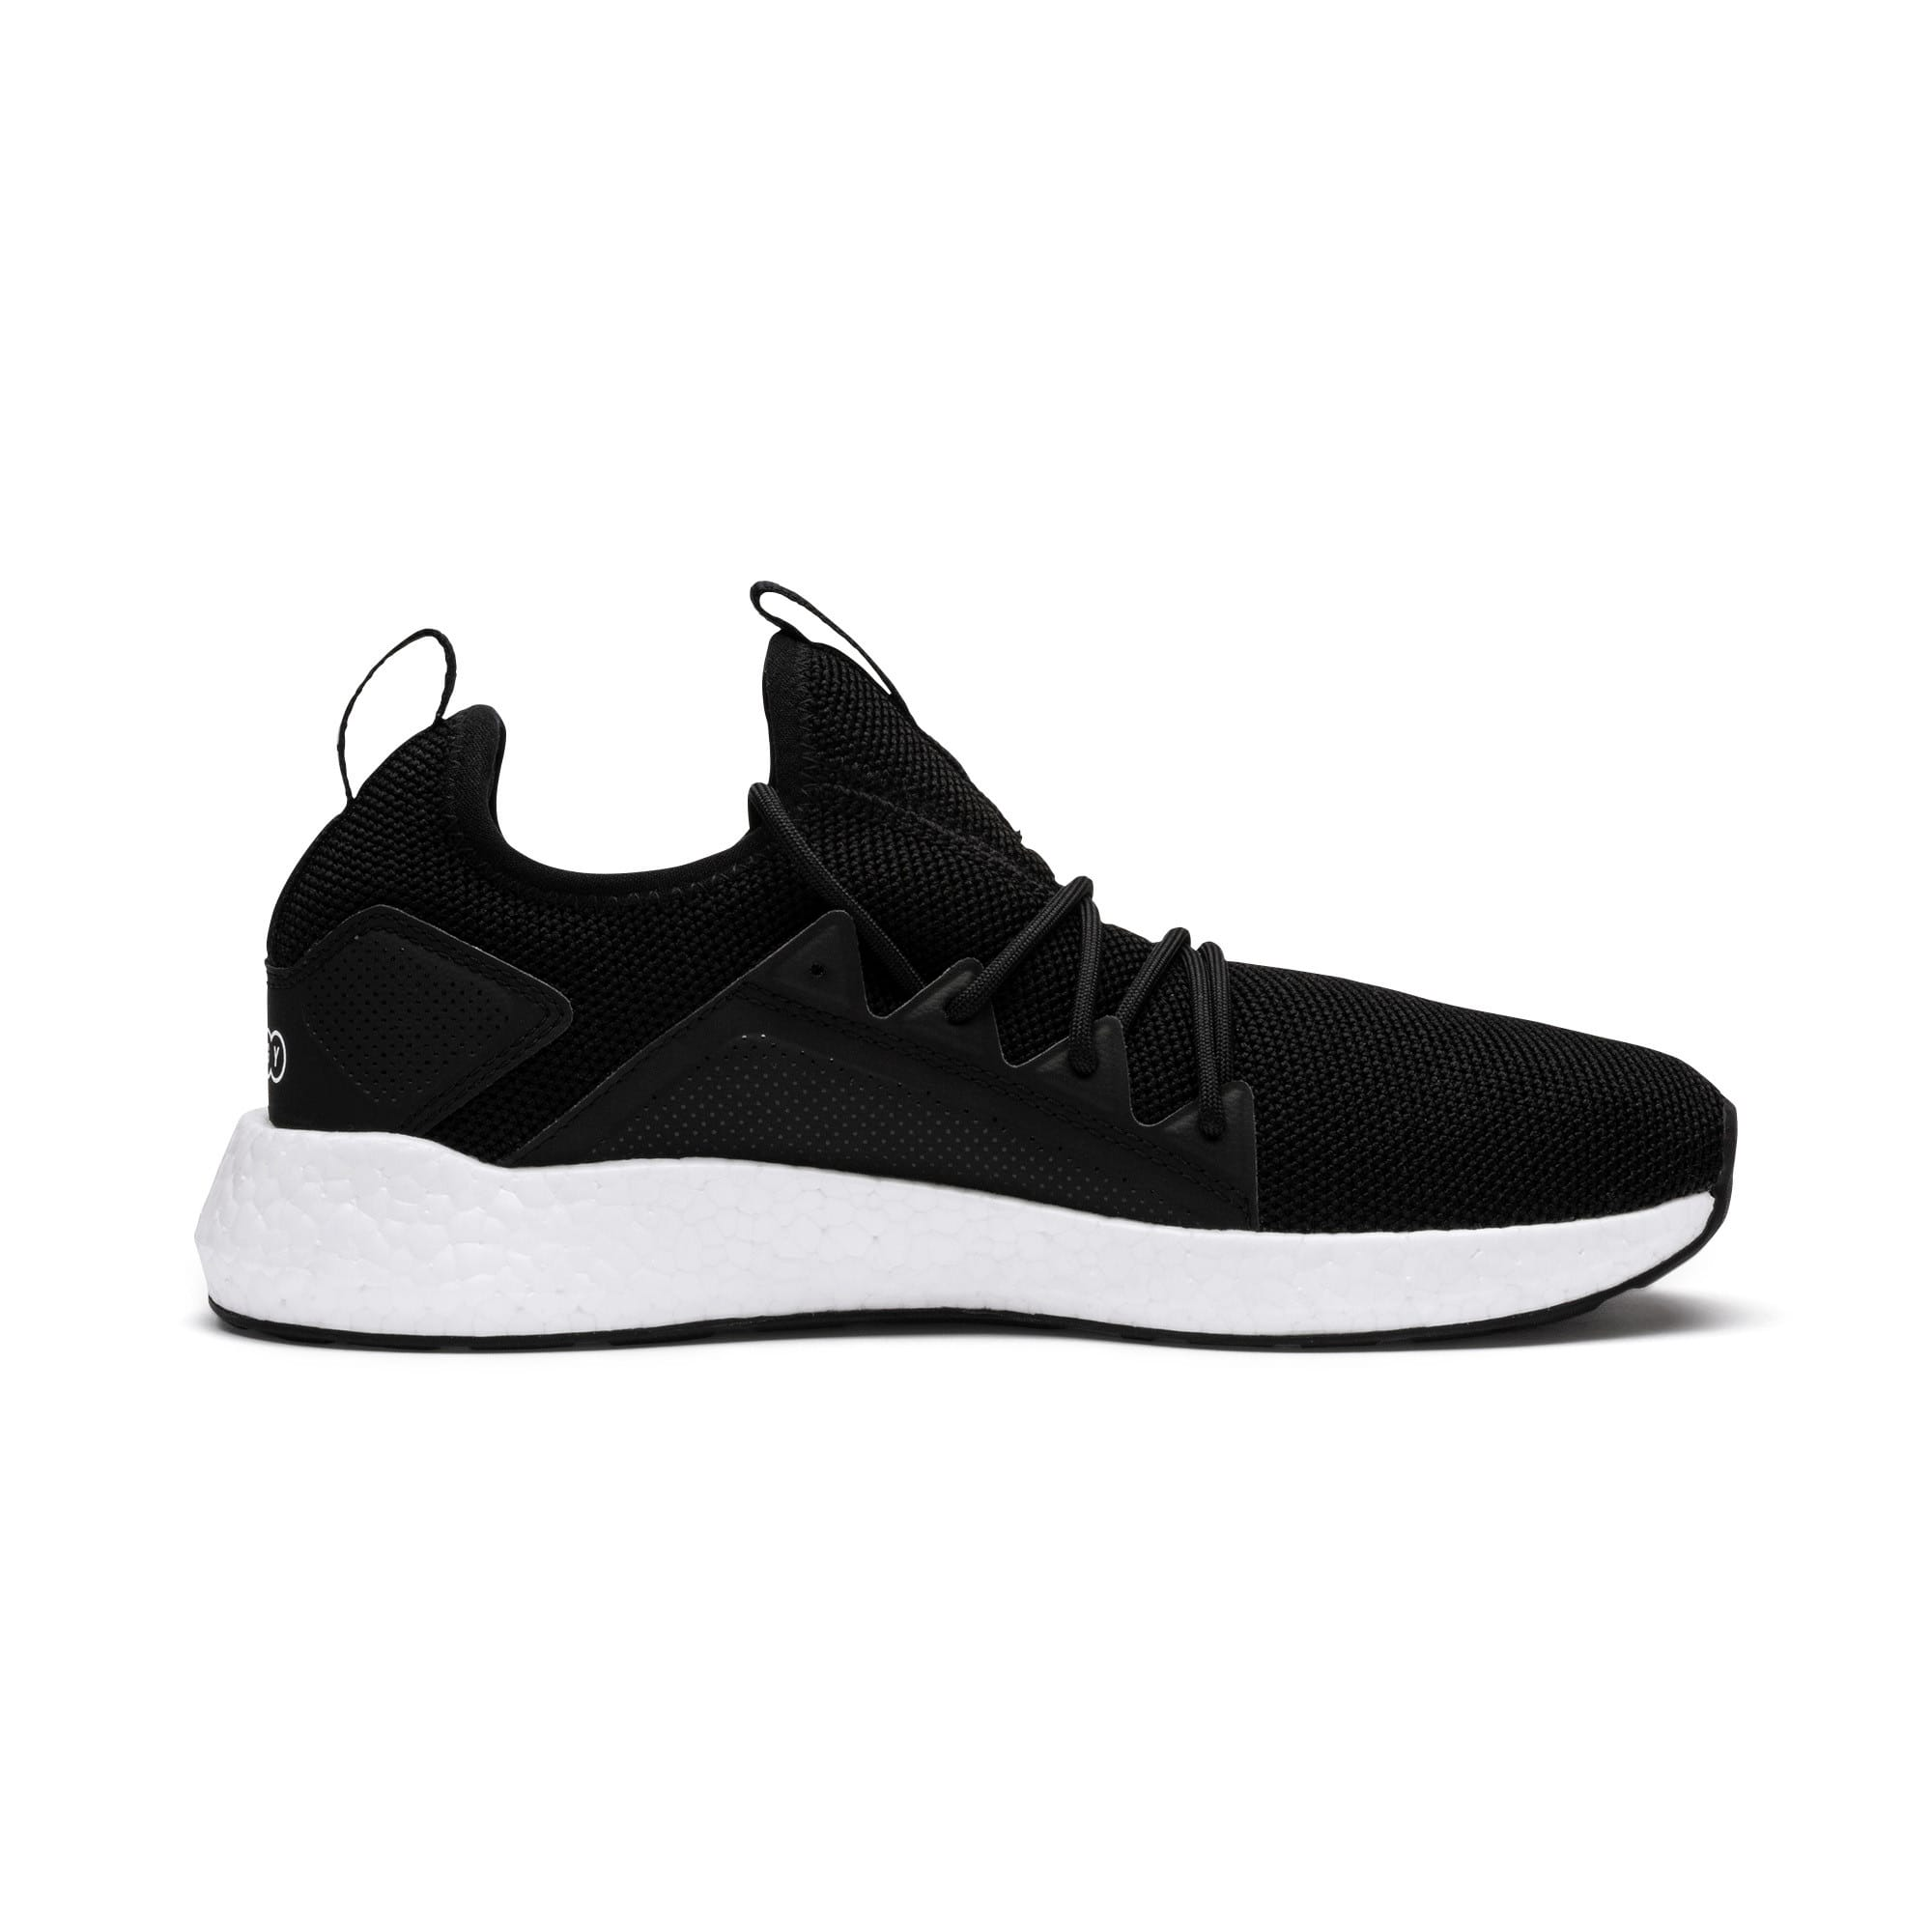 Thumbnail 5 of NRGY Neko Women's Running Shoes, Puma Black-Puma White, medium